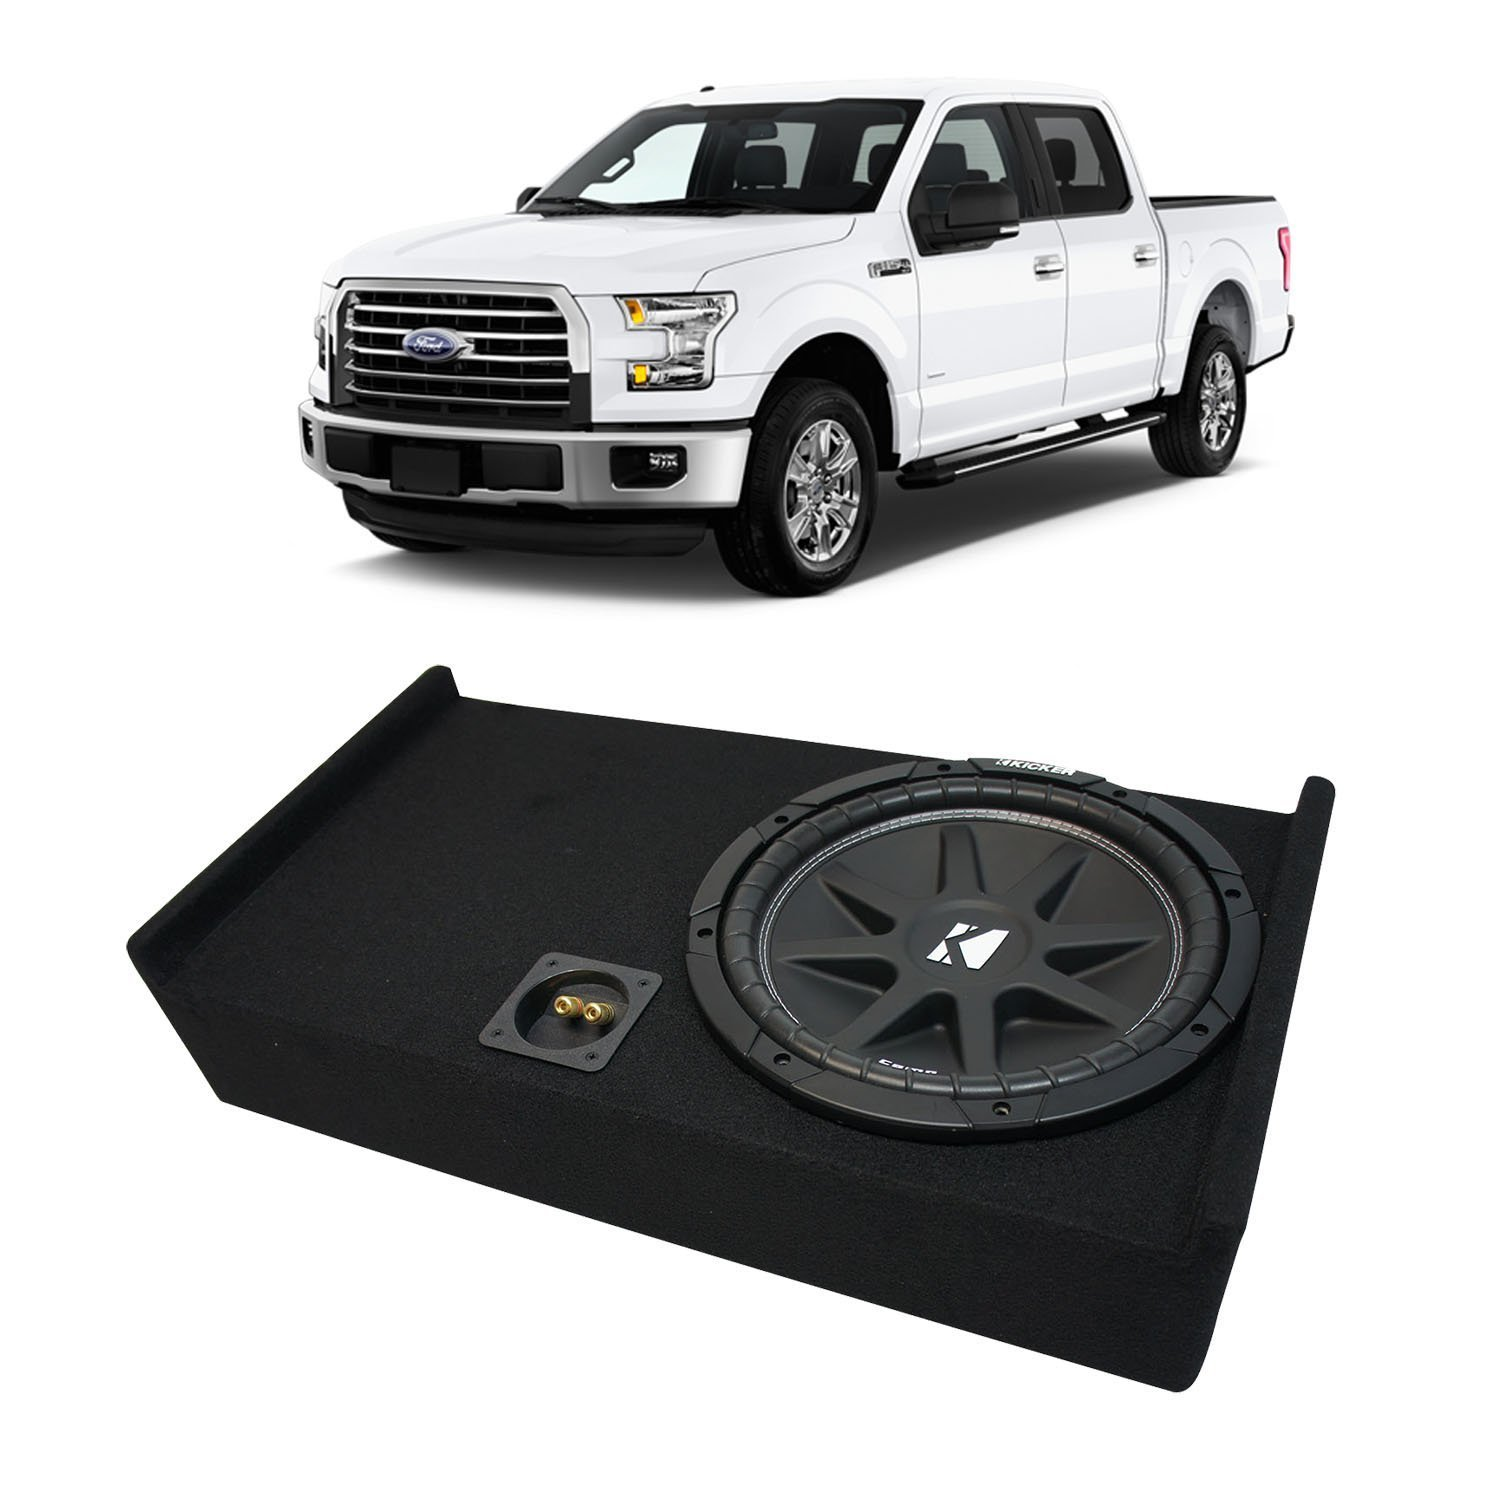 "Bbox 10/"" Down Subwoofer Enclosure for 1997-03 Ford F-150 Extended Cab Truck"